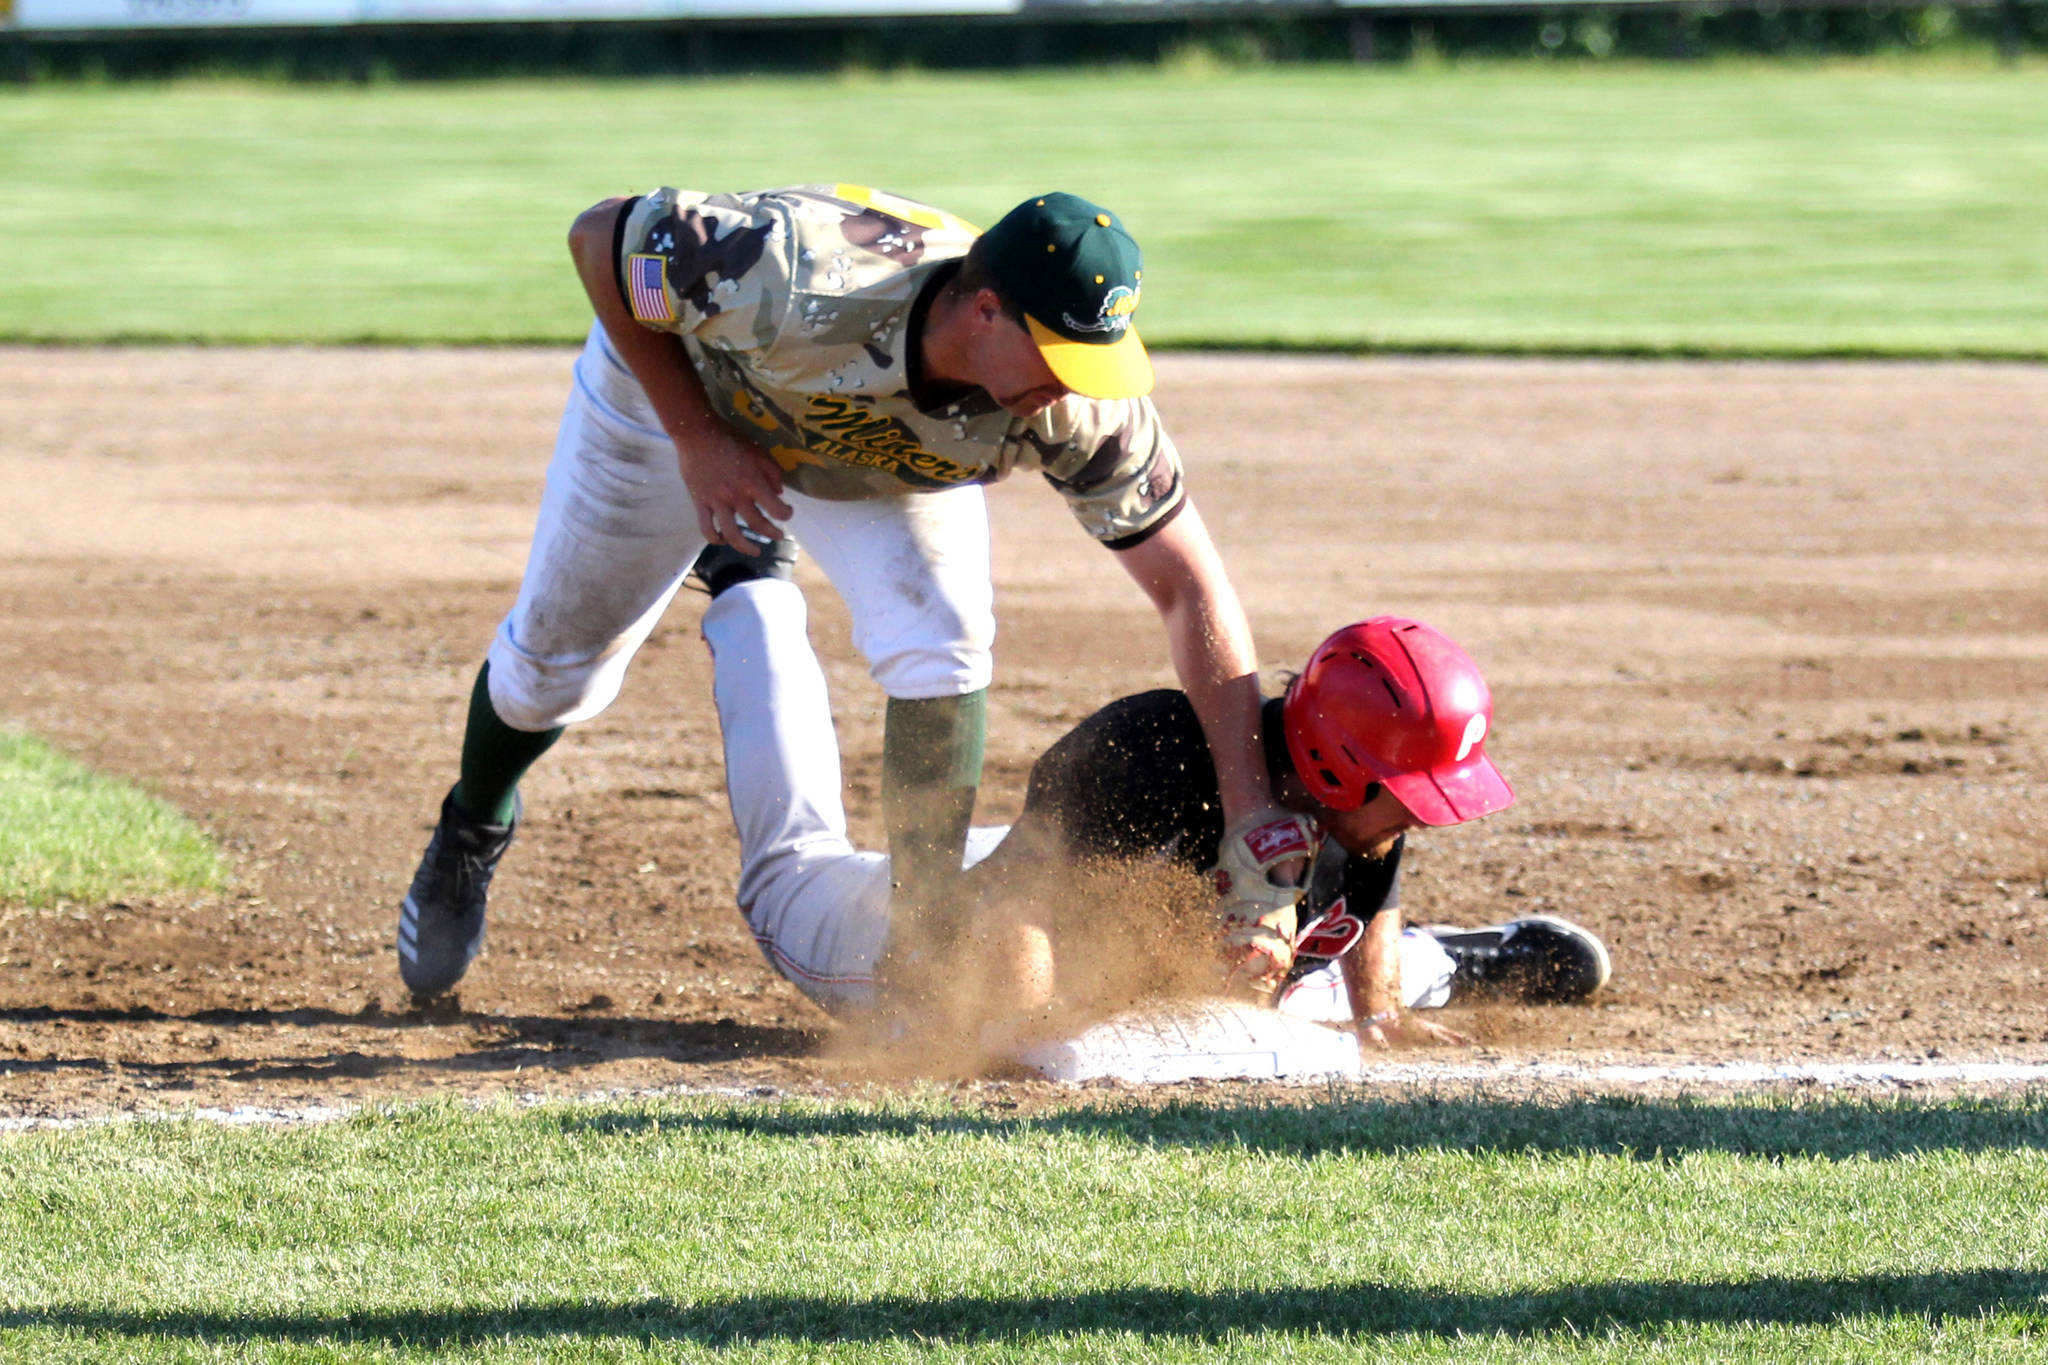 Peninsula Oilers first baseman John Hanley beats the tag of Mat-Su Miners first baseman Nick Cirelli during Mat-Su's 5-2 win over the Oilers Monday, June 14, 2021, at Hermon Brothers Field in Palmer. (Jeremiah Bartz/Frontiersman)